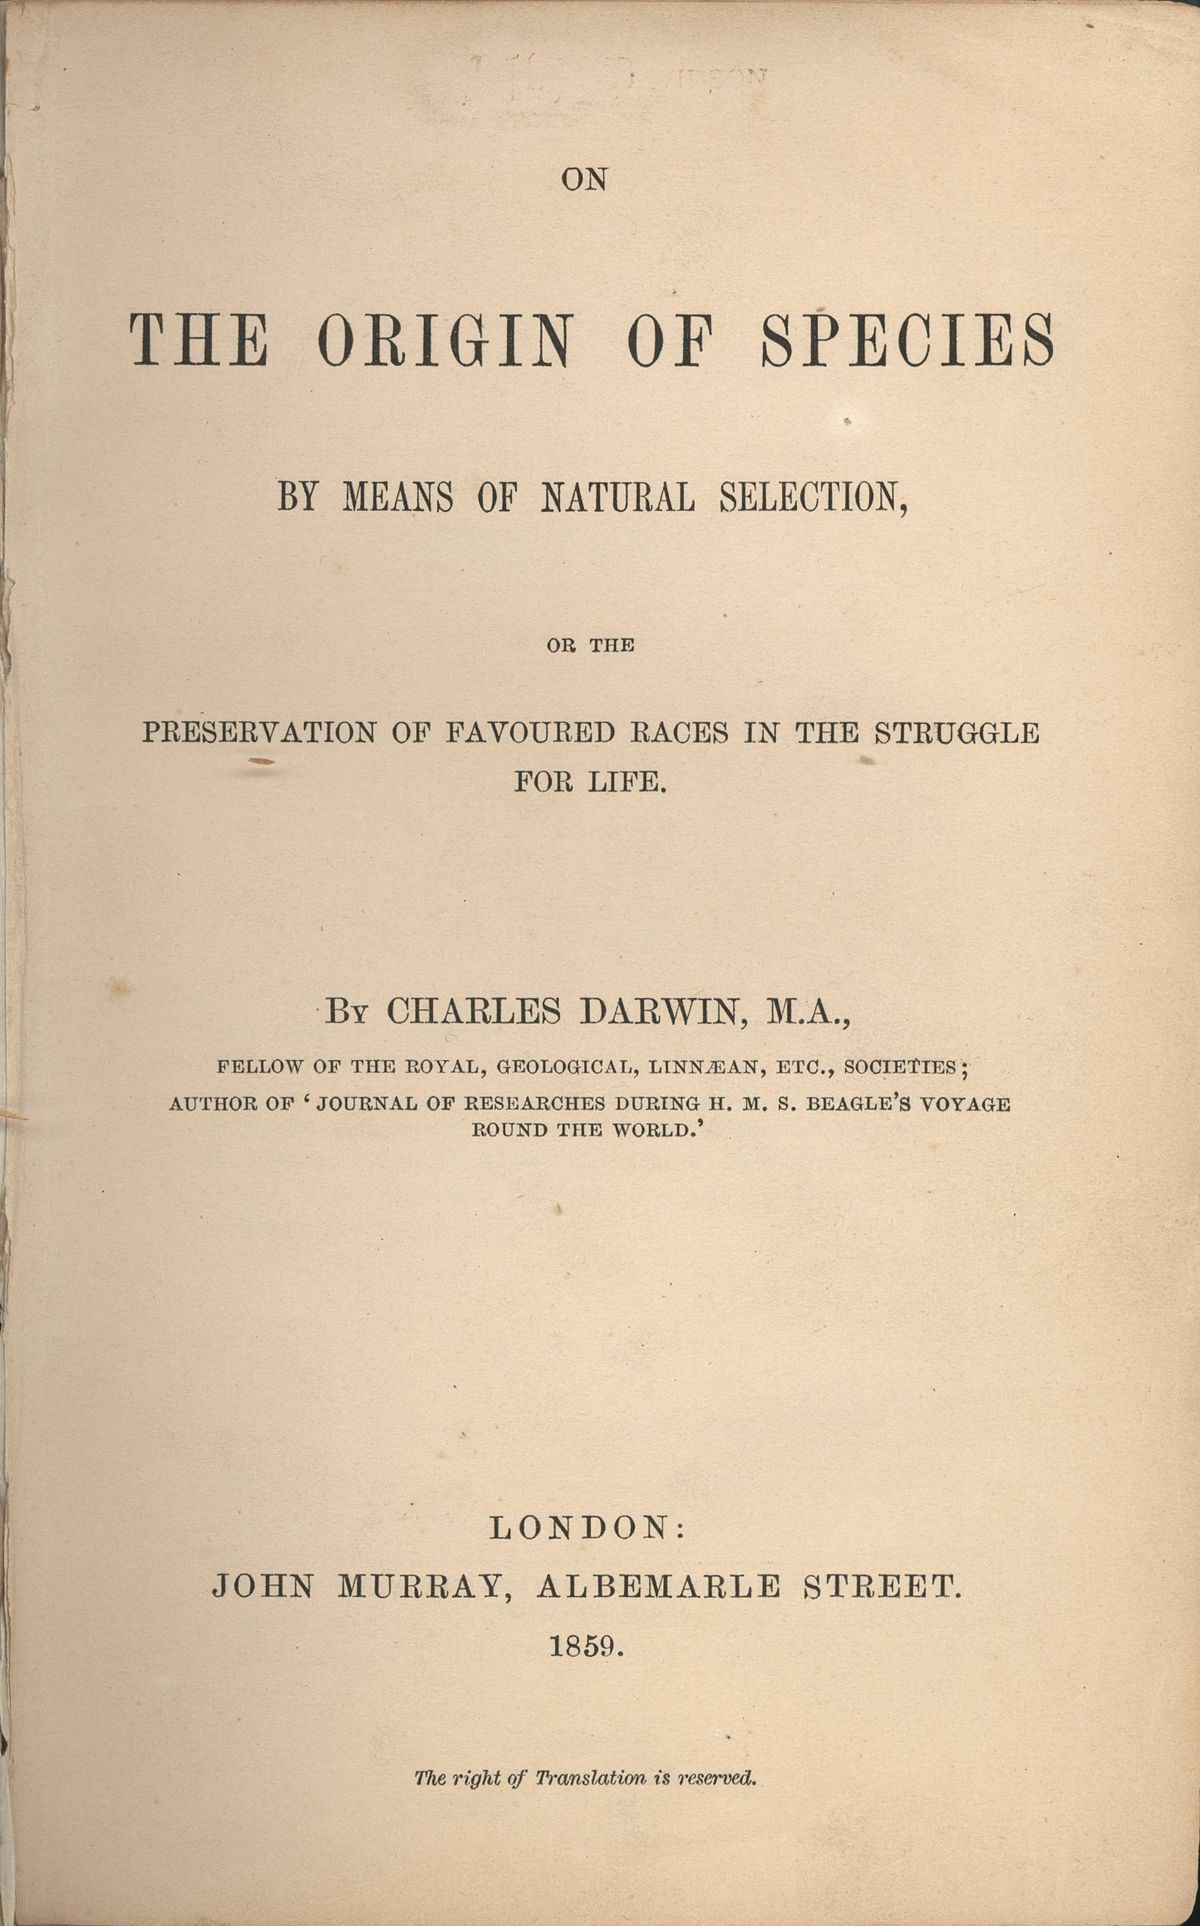 Charles Darwin – On the Origin of Species by Means of Natural Selection